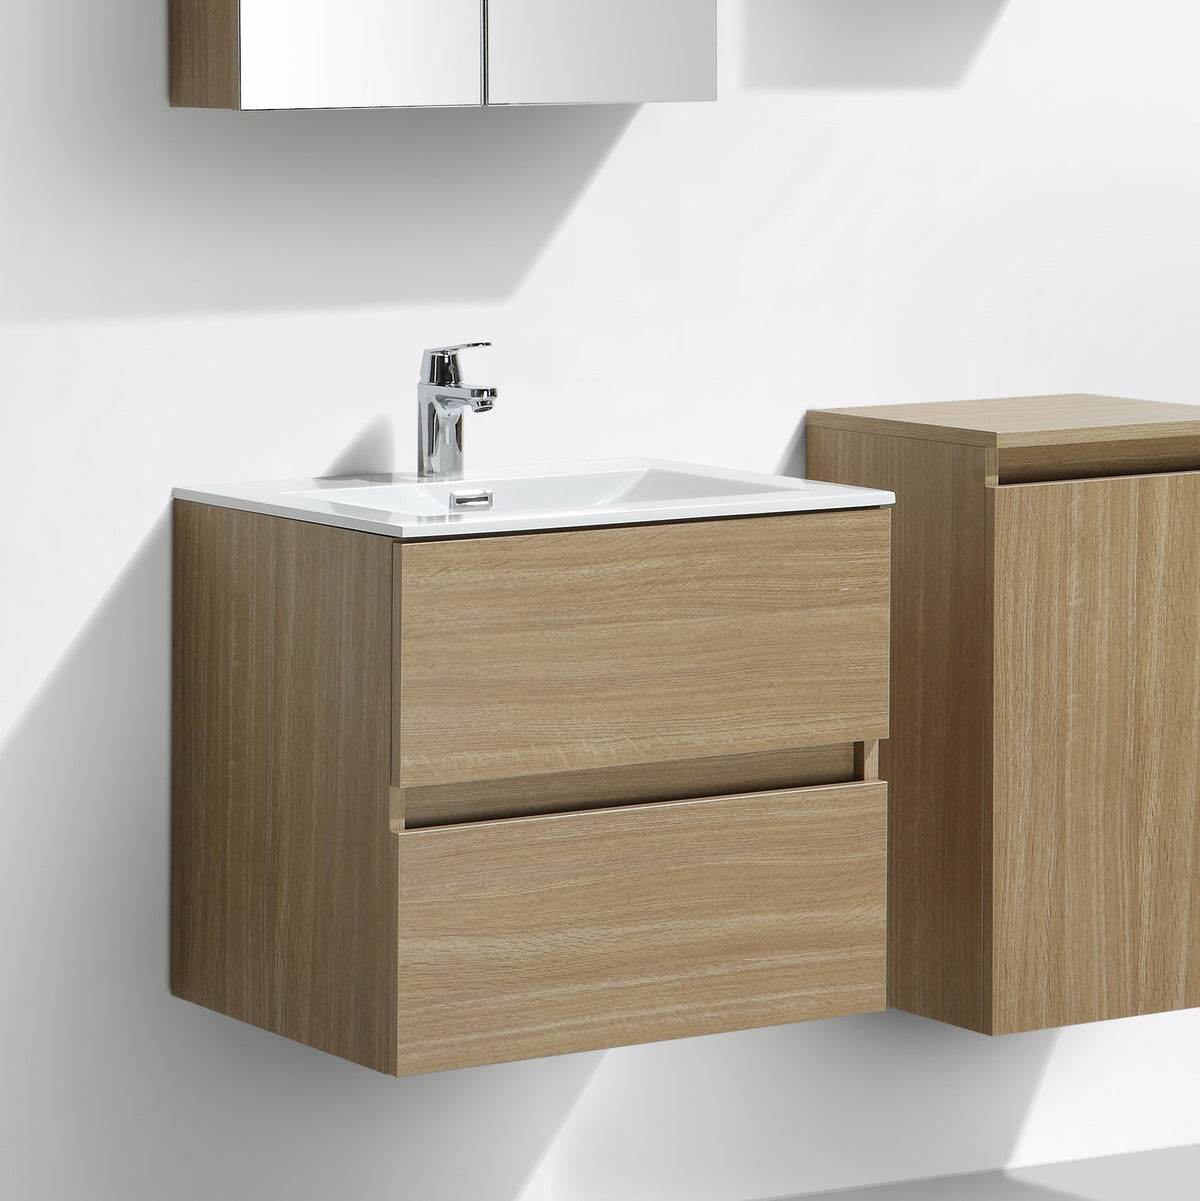 Meuble salle de bain design simple vasque siena largeur 60 cm ch ne c le monde du bain - Meuble sdb simple vasque ...